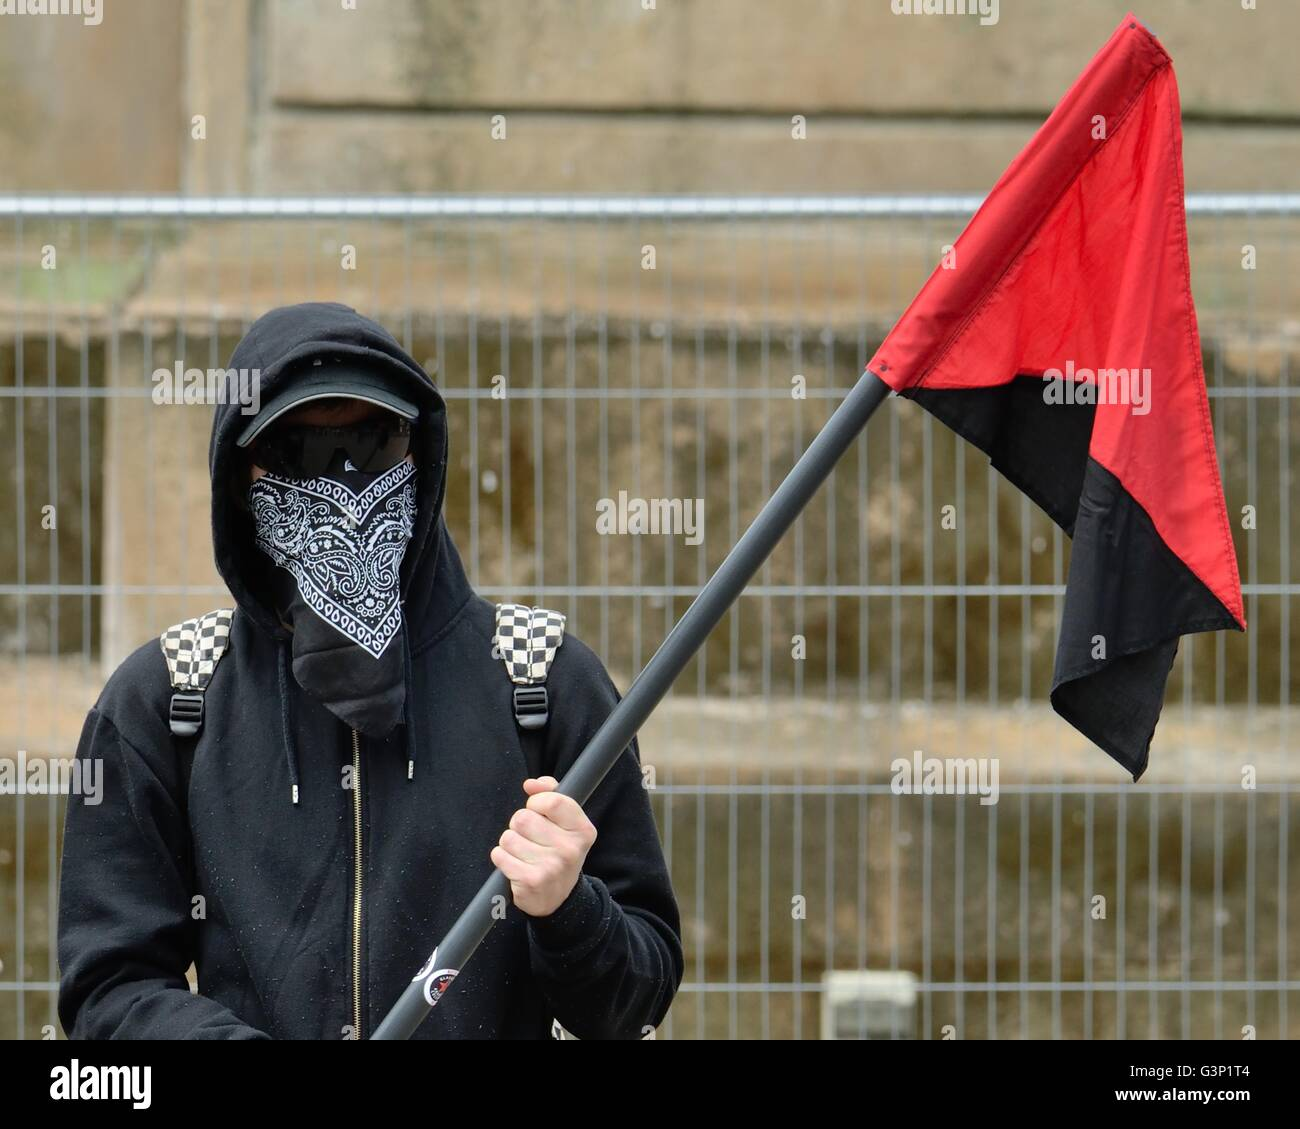 A youth with his face covered hold a diagonally bisected red and black flag of the anarchist movement. - Stock Image